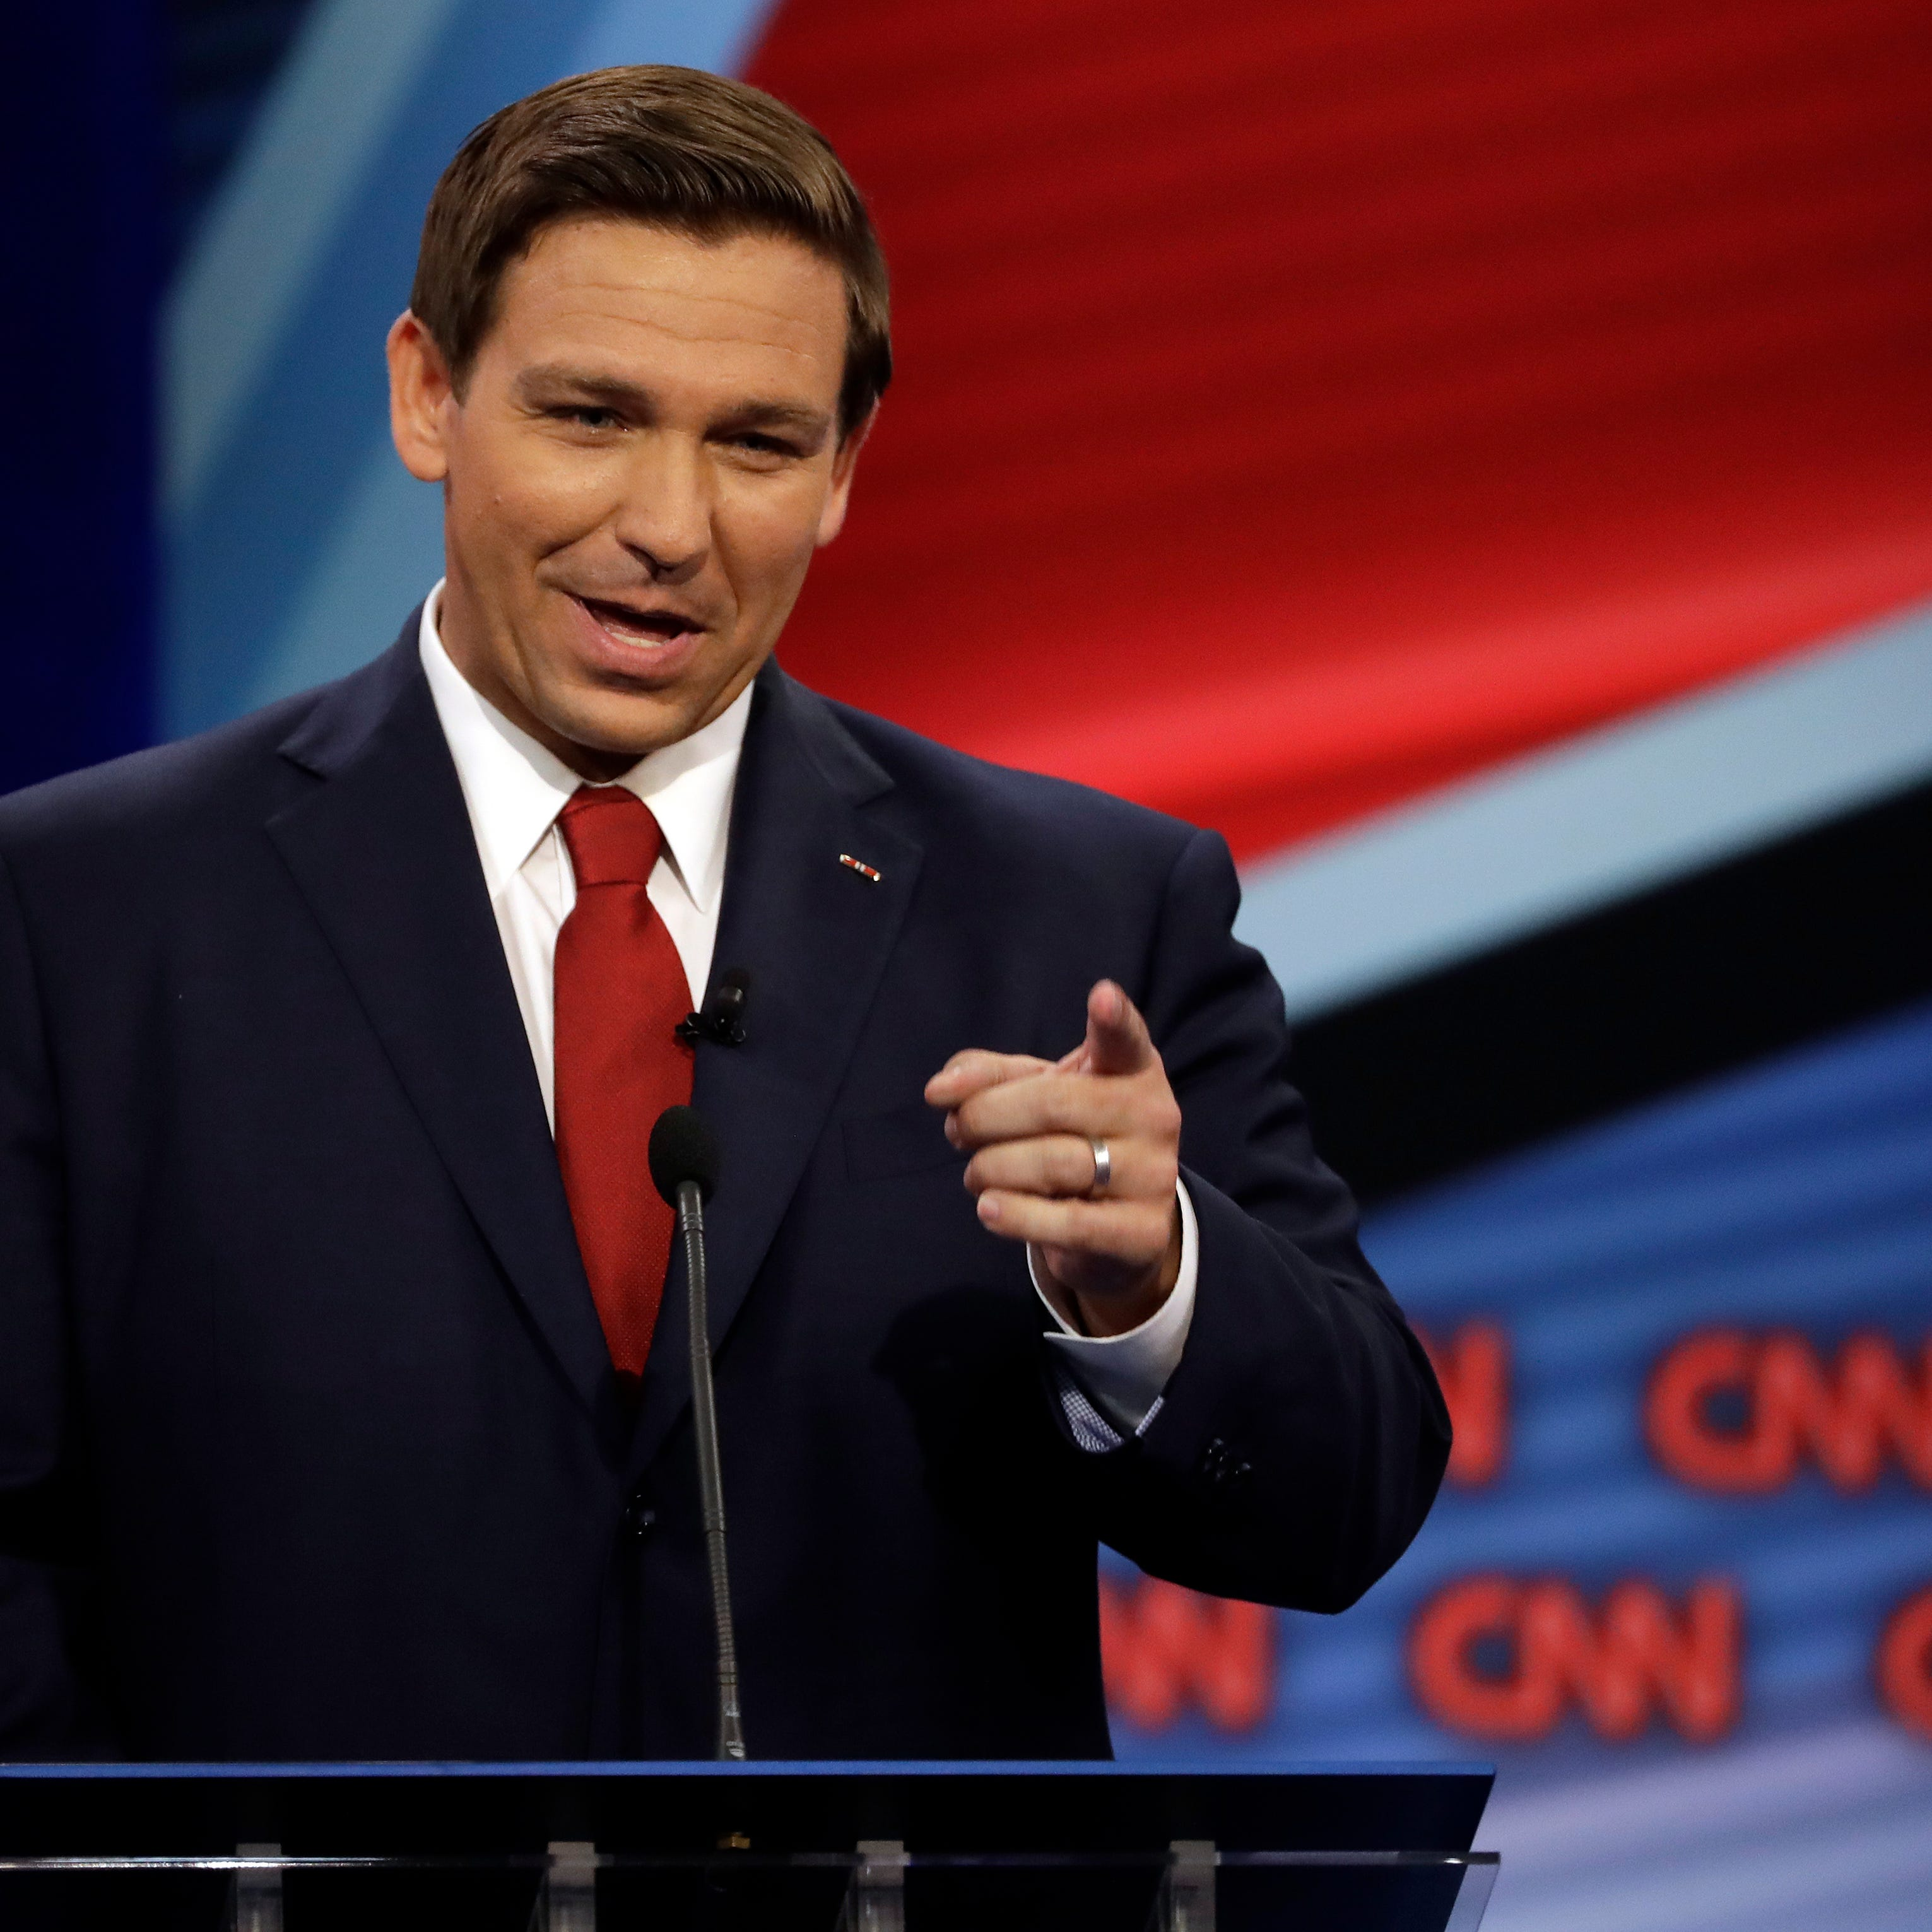 GOP candidate Ron DeSantis backs out of meeting with USA TODAY NETWORK - Florida